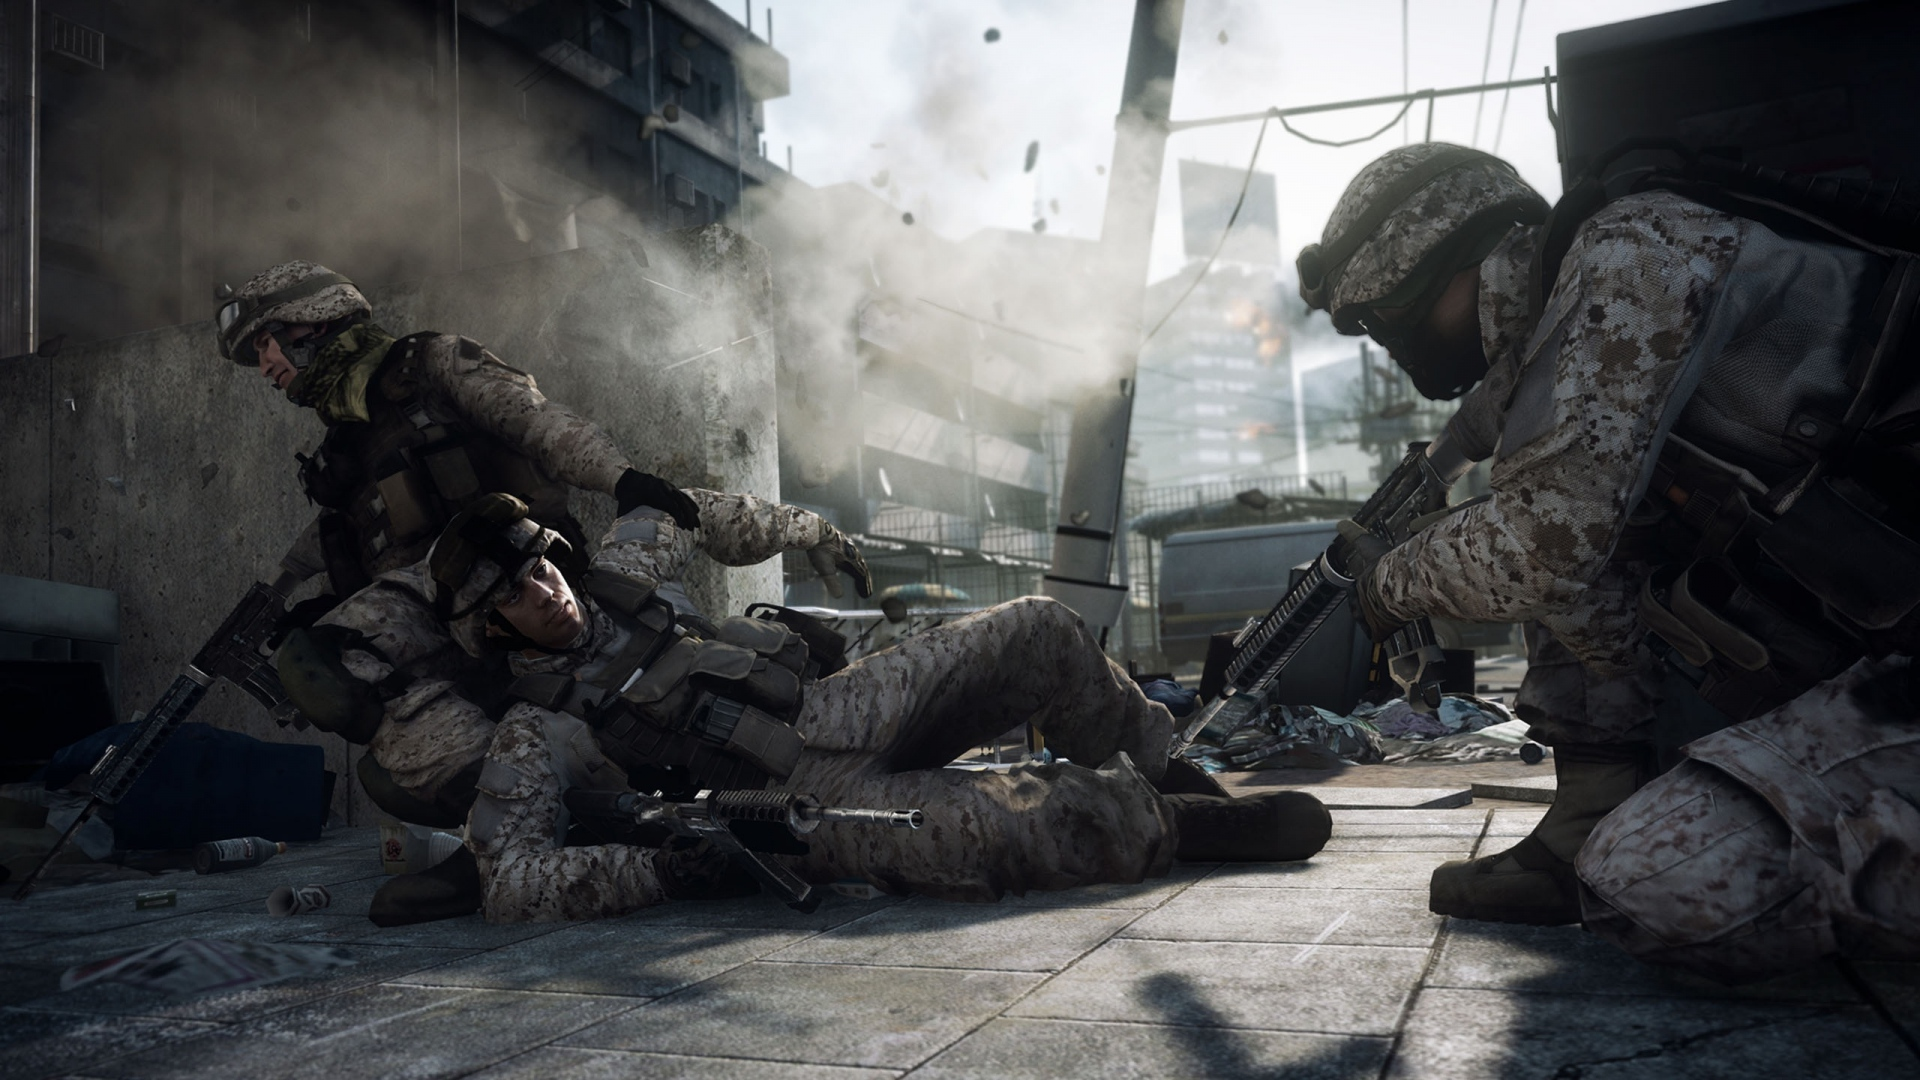 Download wallpaper 1920x1080 battlefield 3 soldiers building battlefield 3 soldiers building voltagebd Images